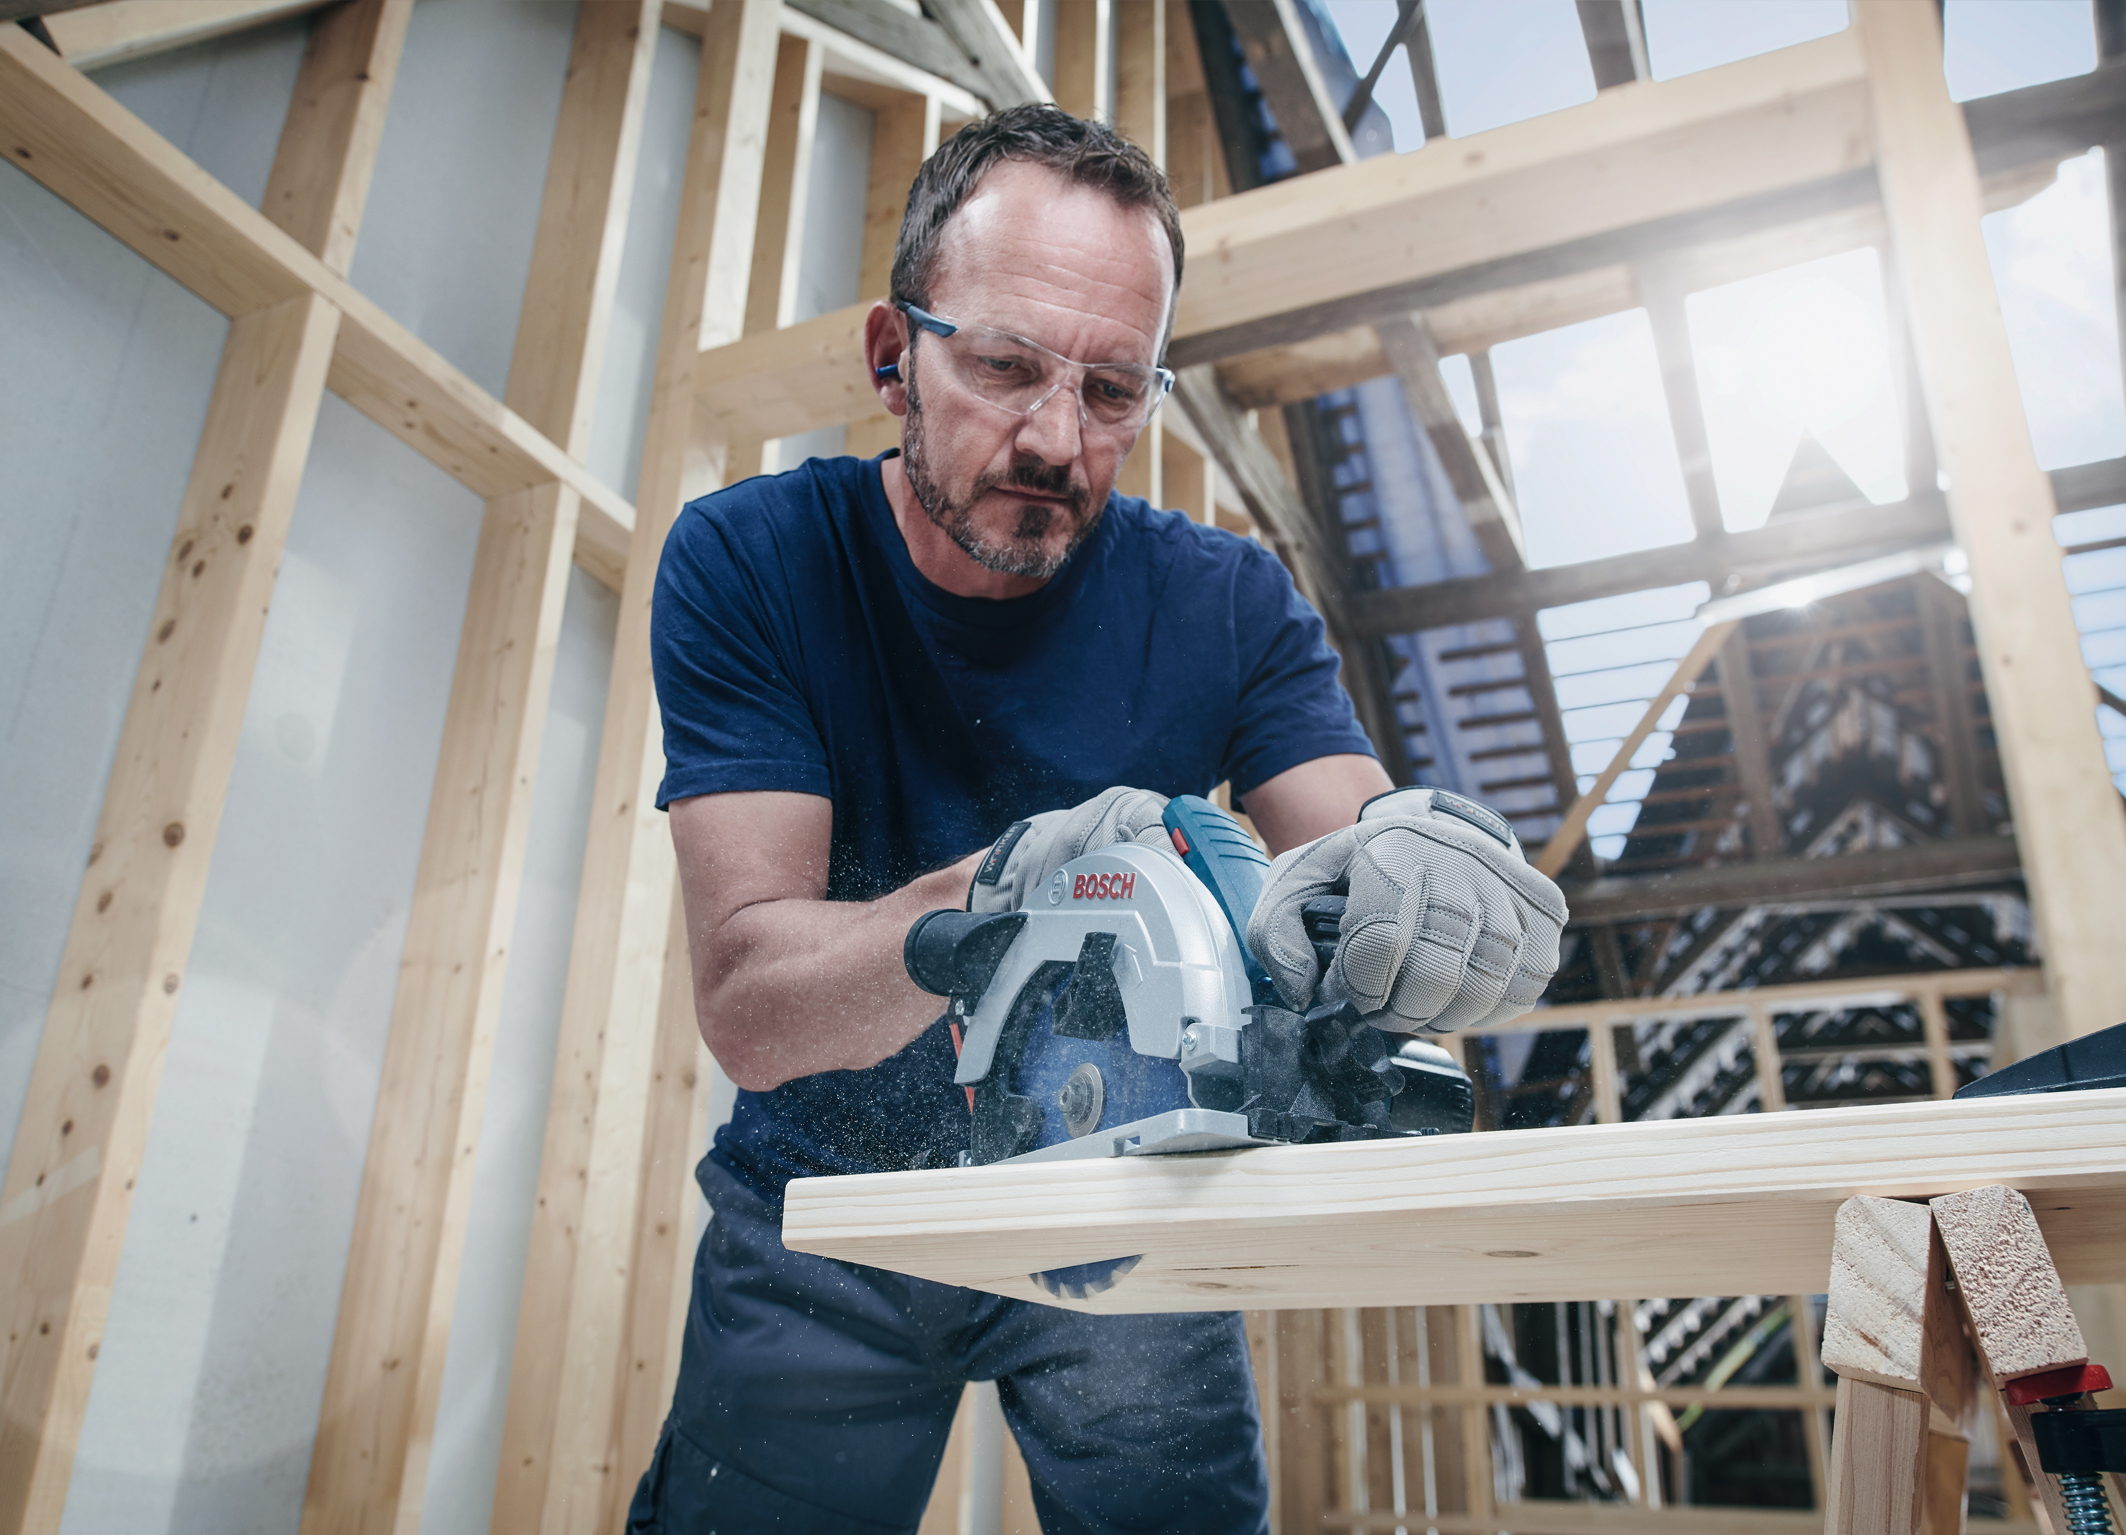 Maximum runtime for cordless saws: Bosch carbide-tipped circular saw blades for pros